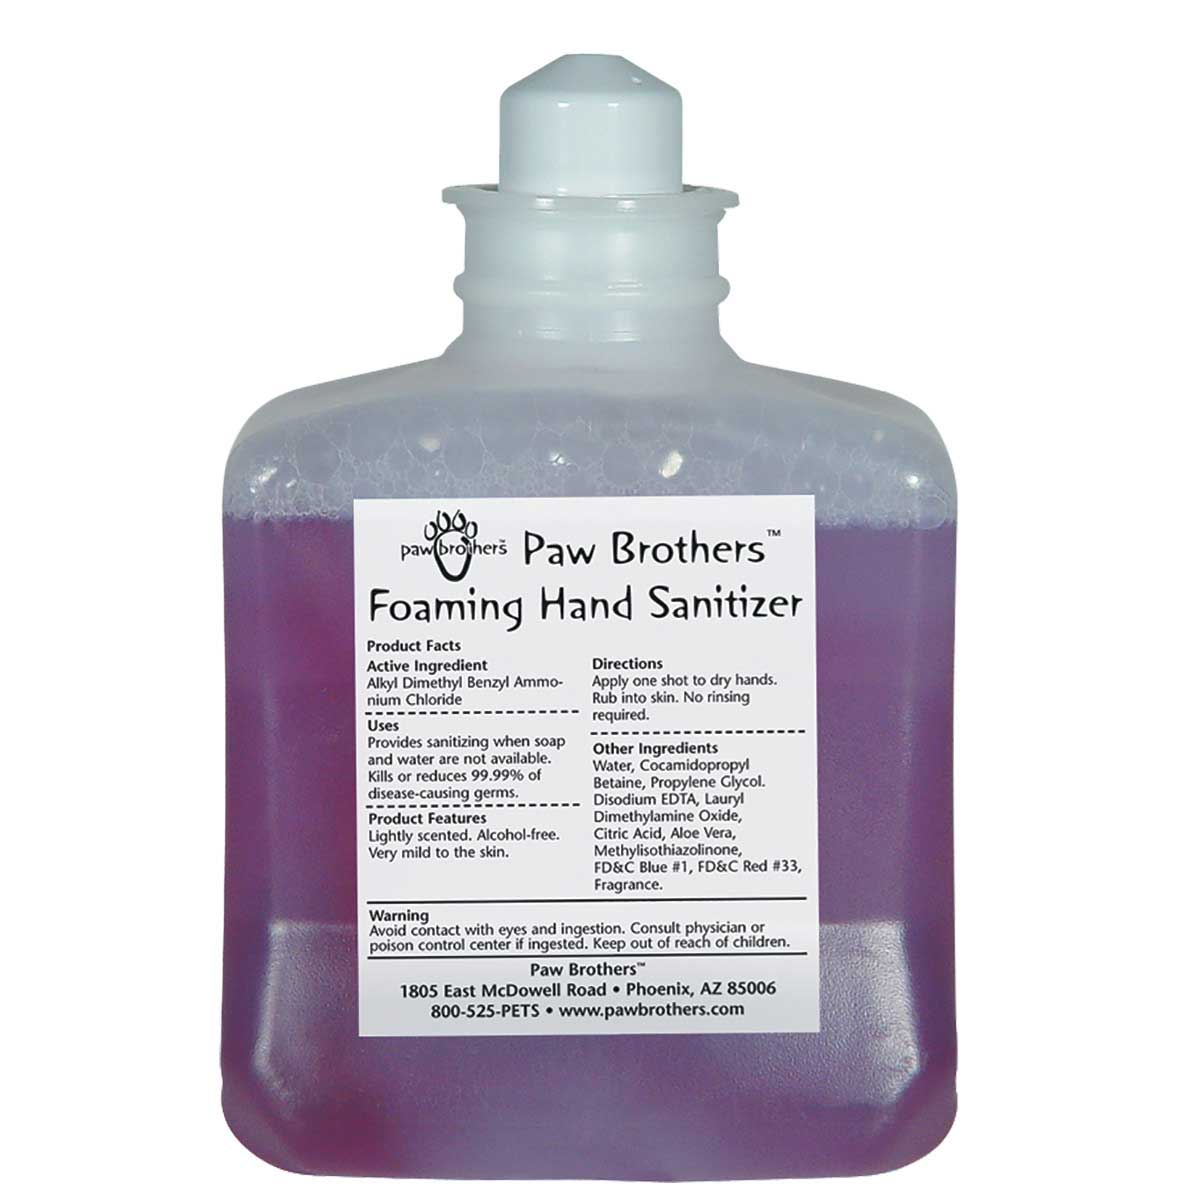 Paw Brothers Foaming Hand Sanitizer - 1 Liter